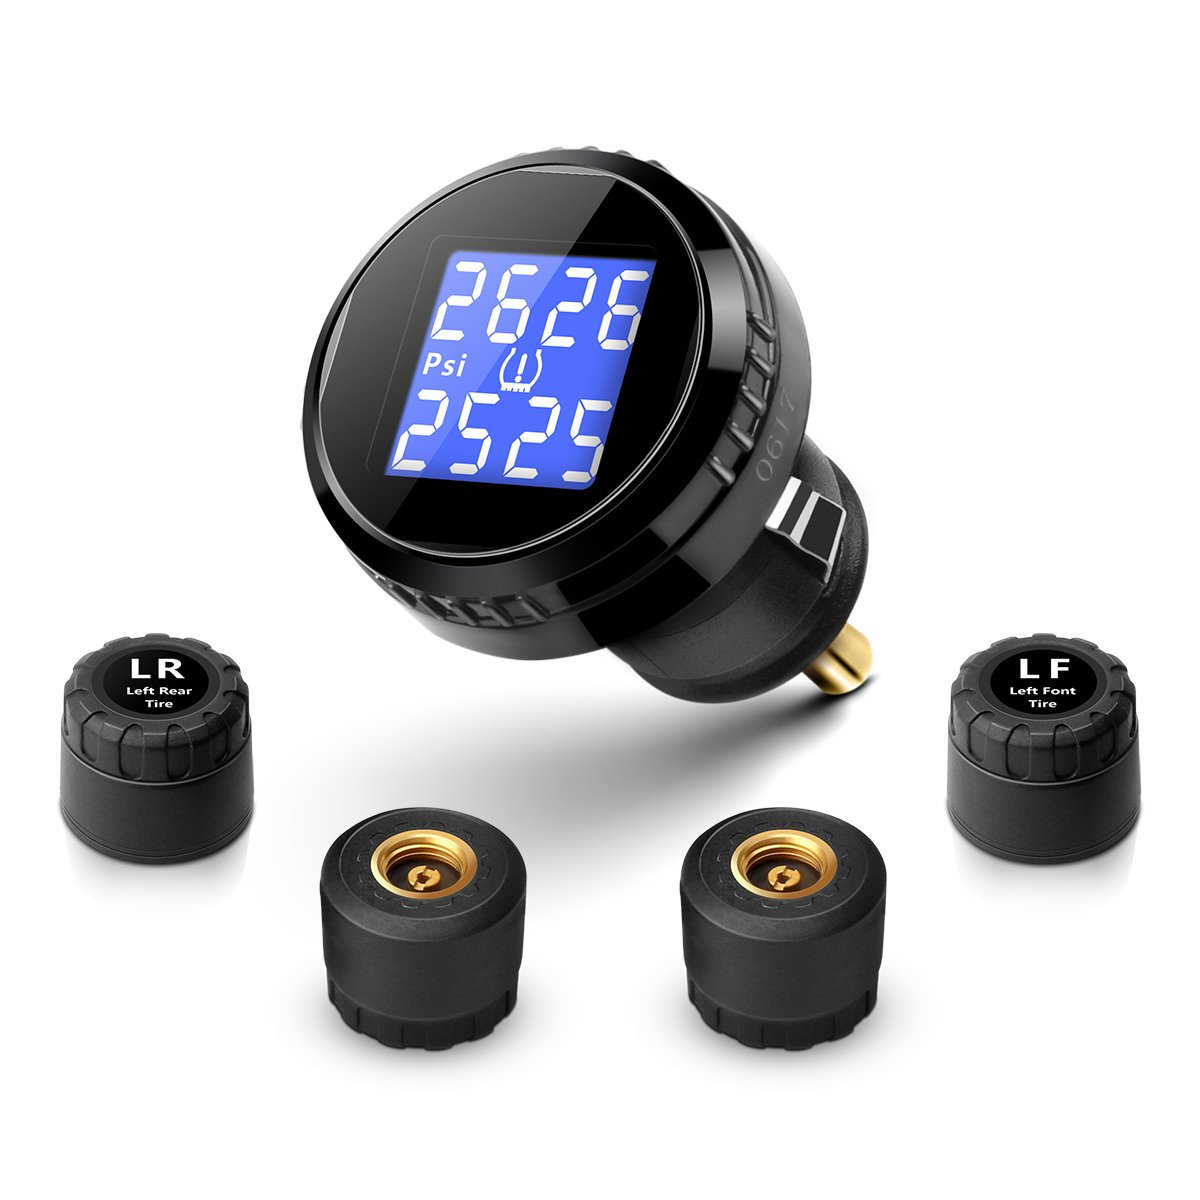 Fullele Wireless Tire Pressure Monitoring System